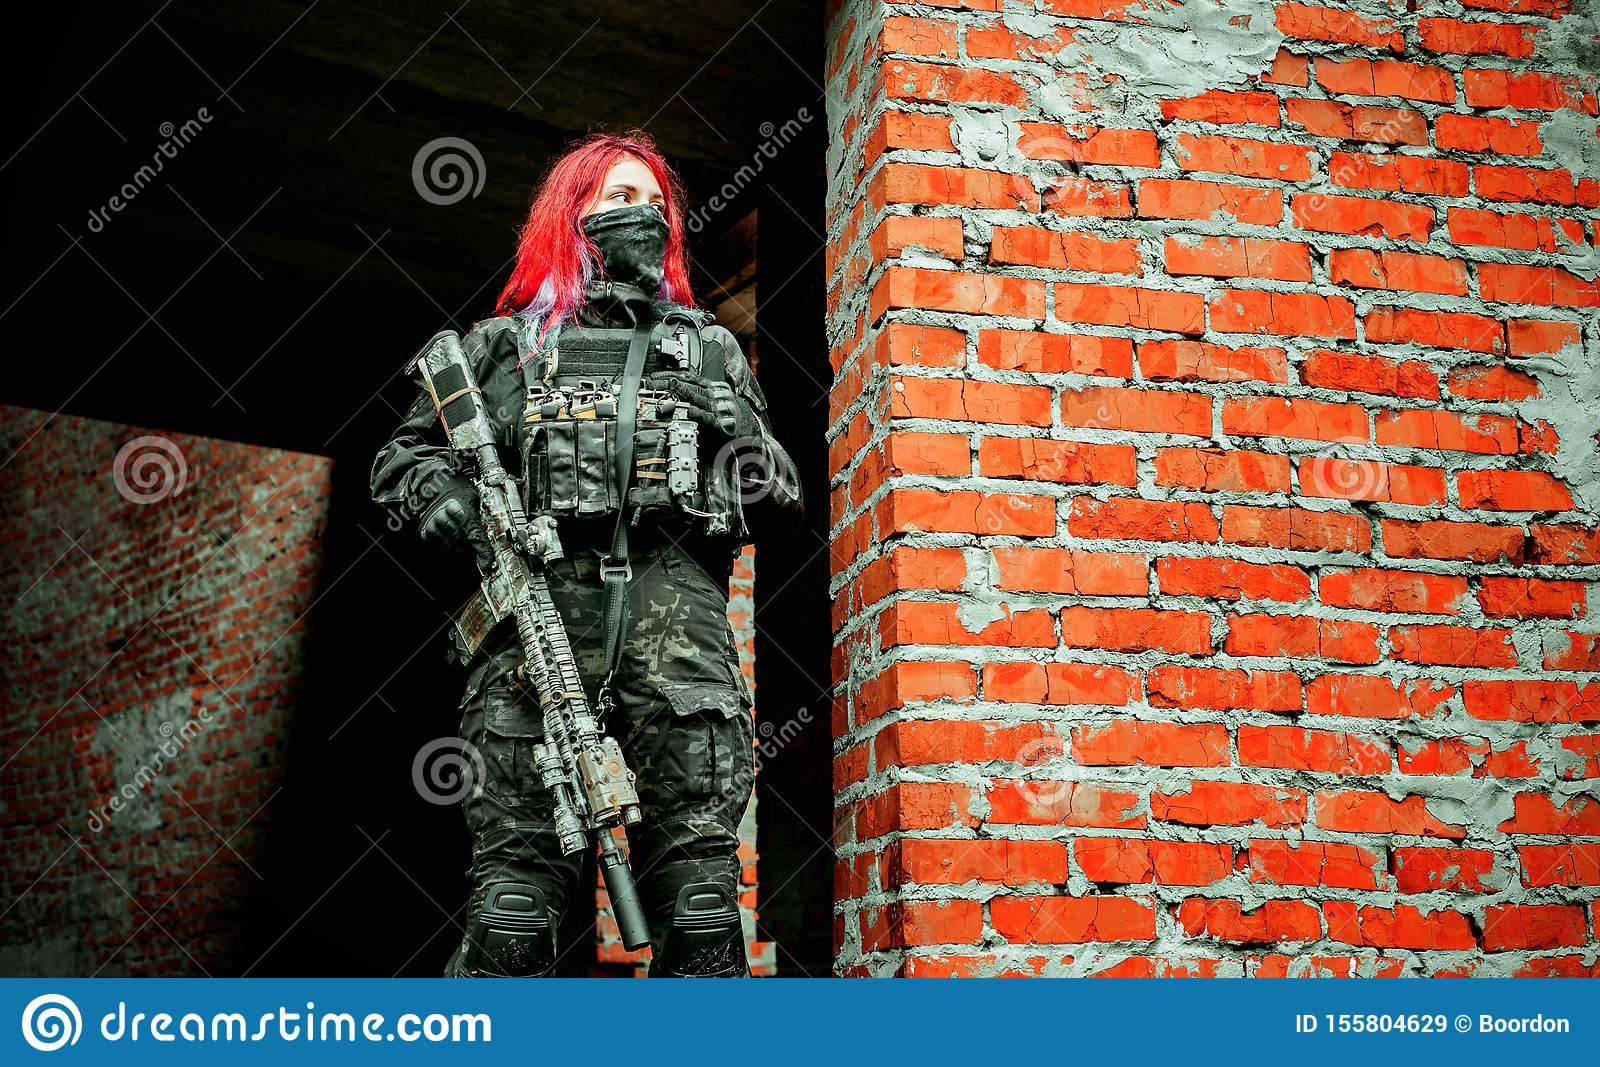 Airsoft red-hair woman in uniform with machine gun standing on ruins. Horizontal photo